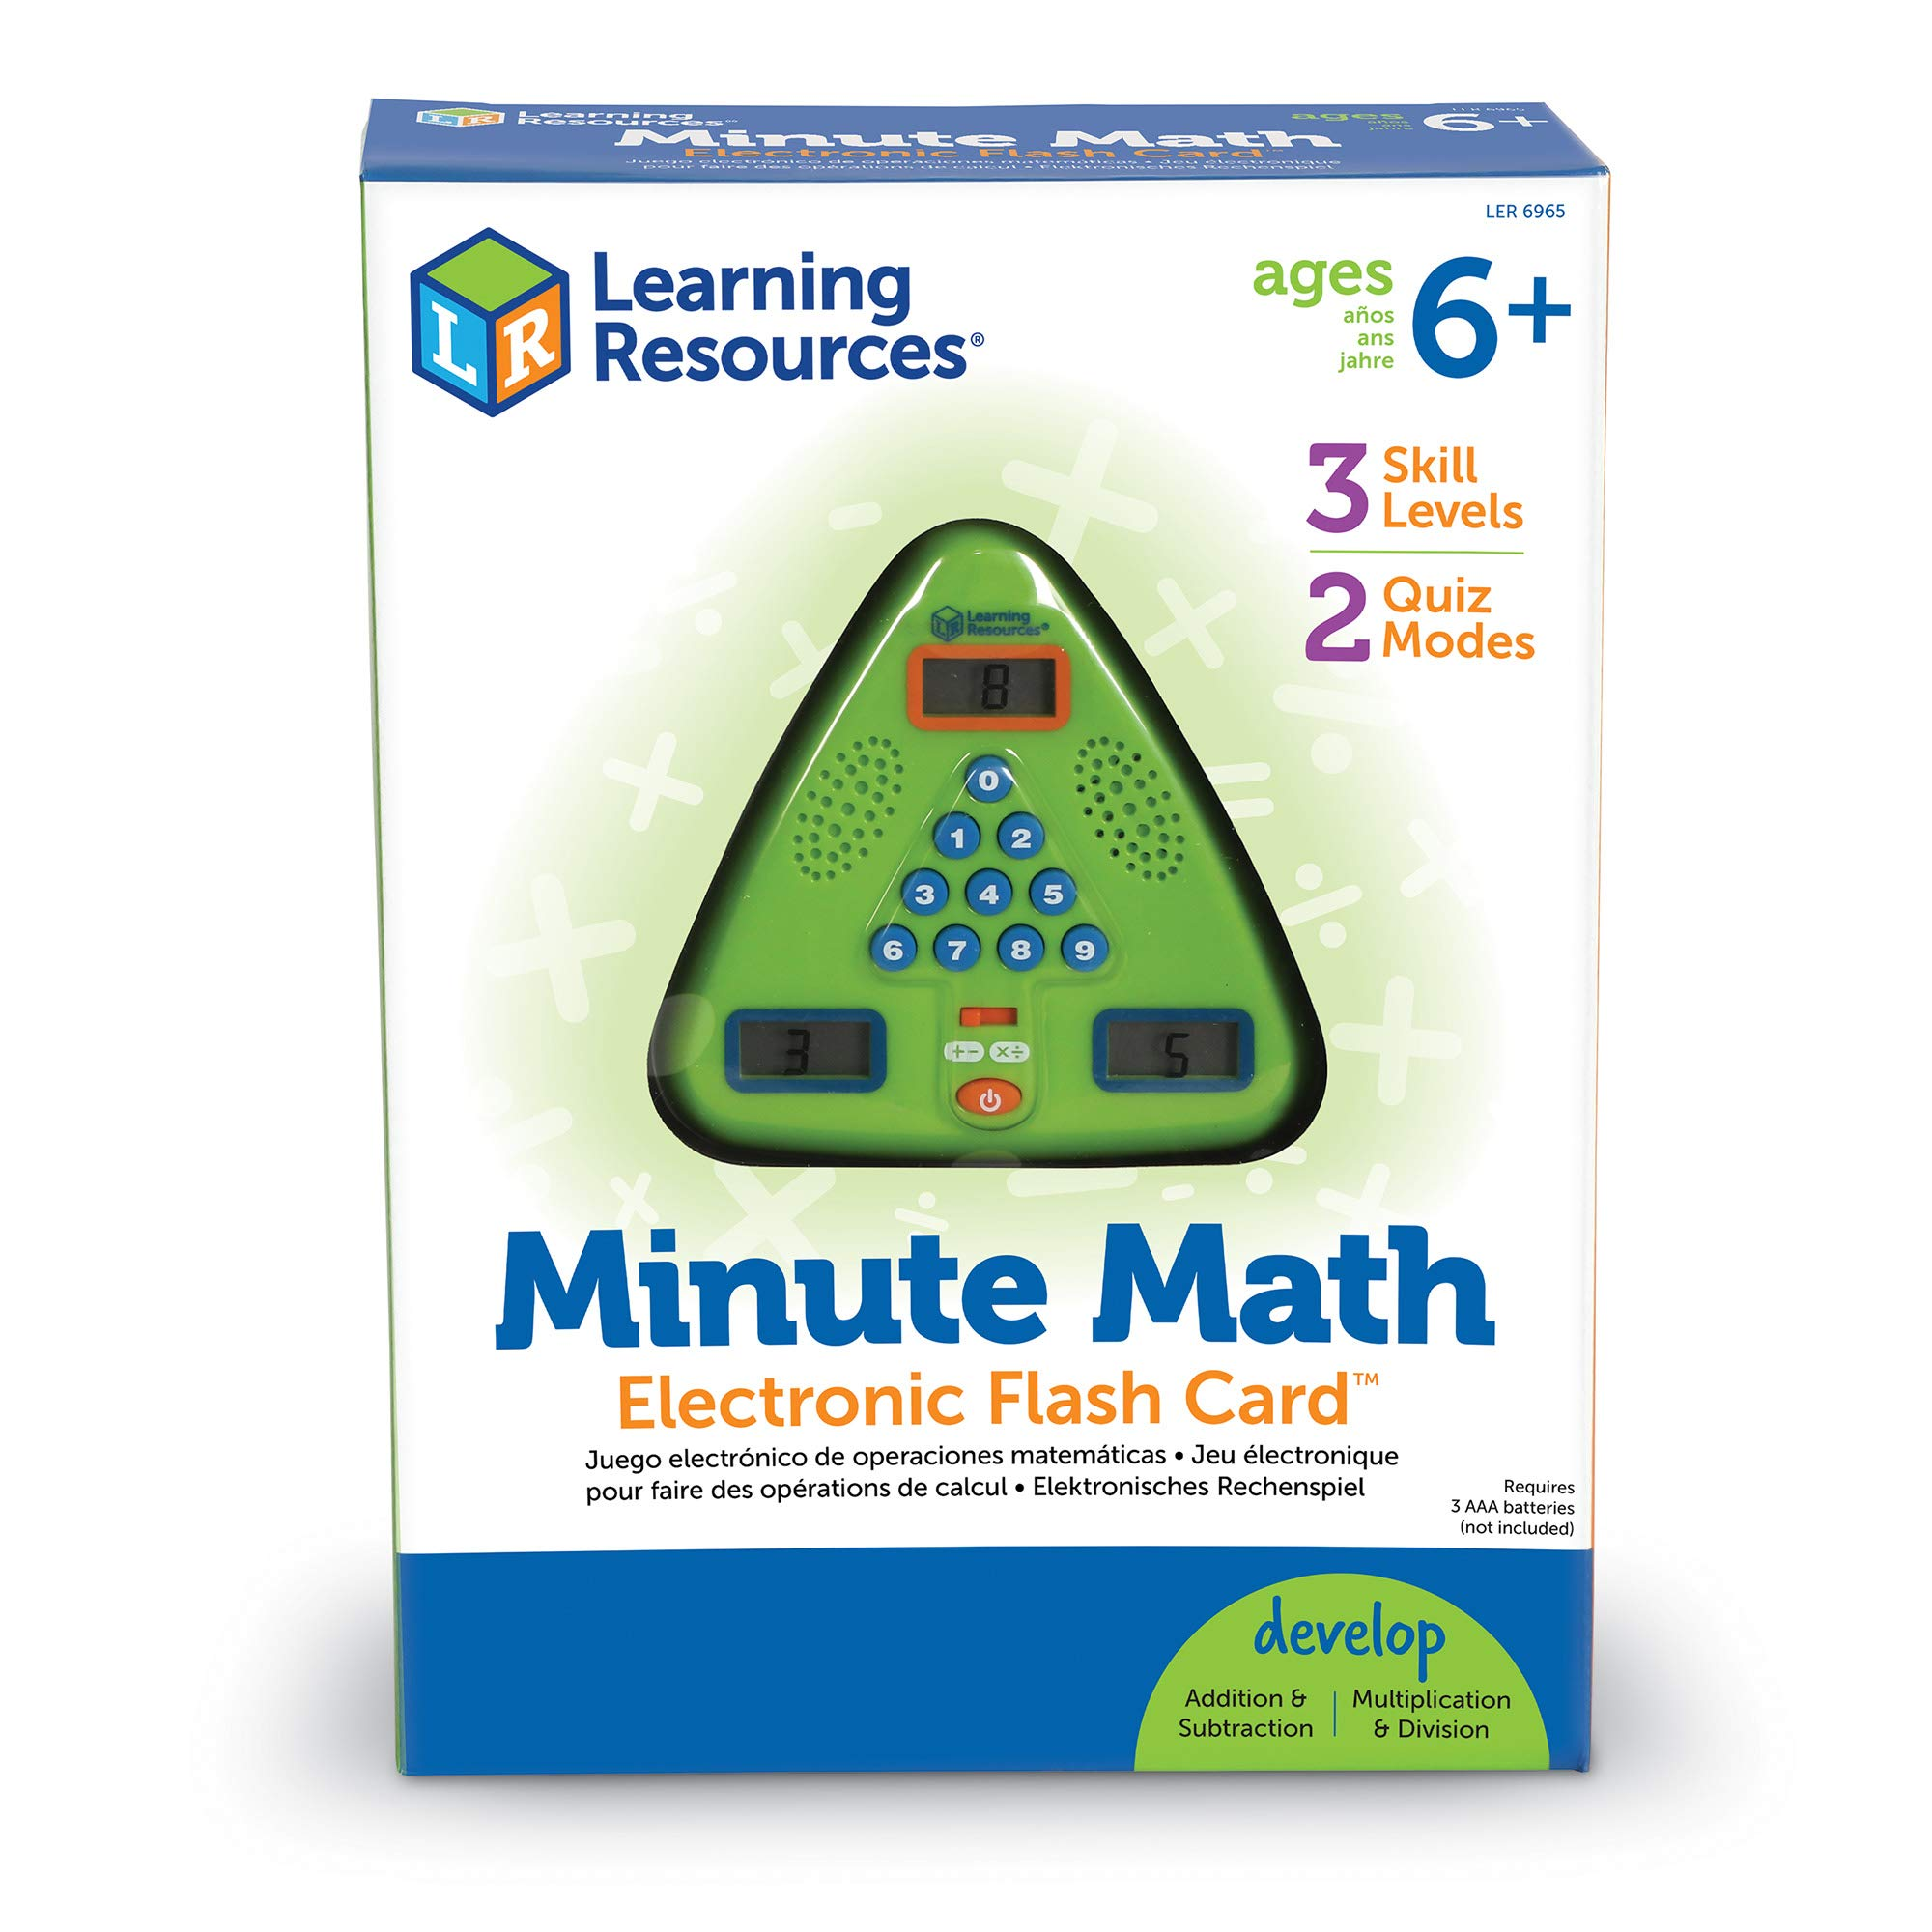 Learning Resources Minute Math Electronic Flash Card, Homeschool, Early Algebra Skills, 3 Difficulty Levels, Ages 6+